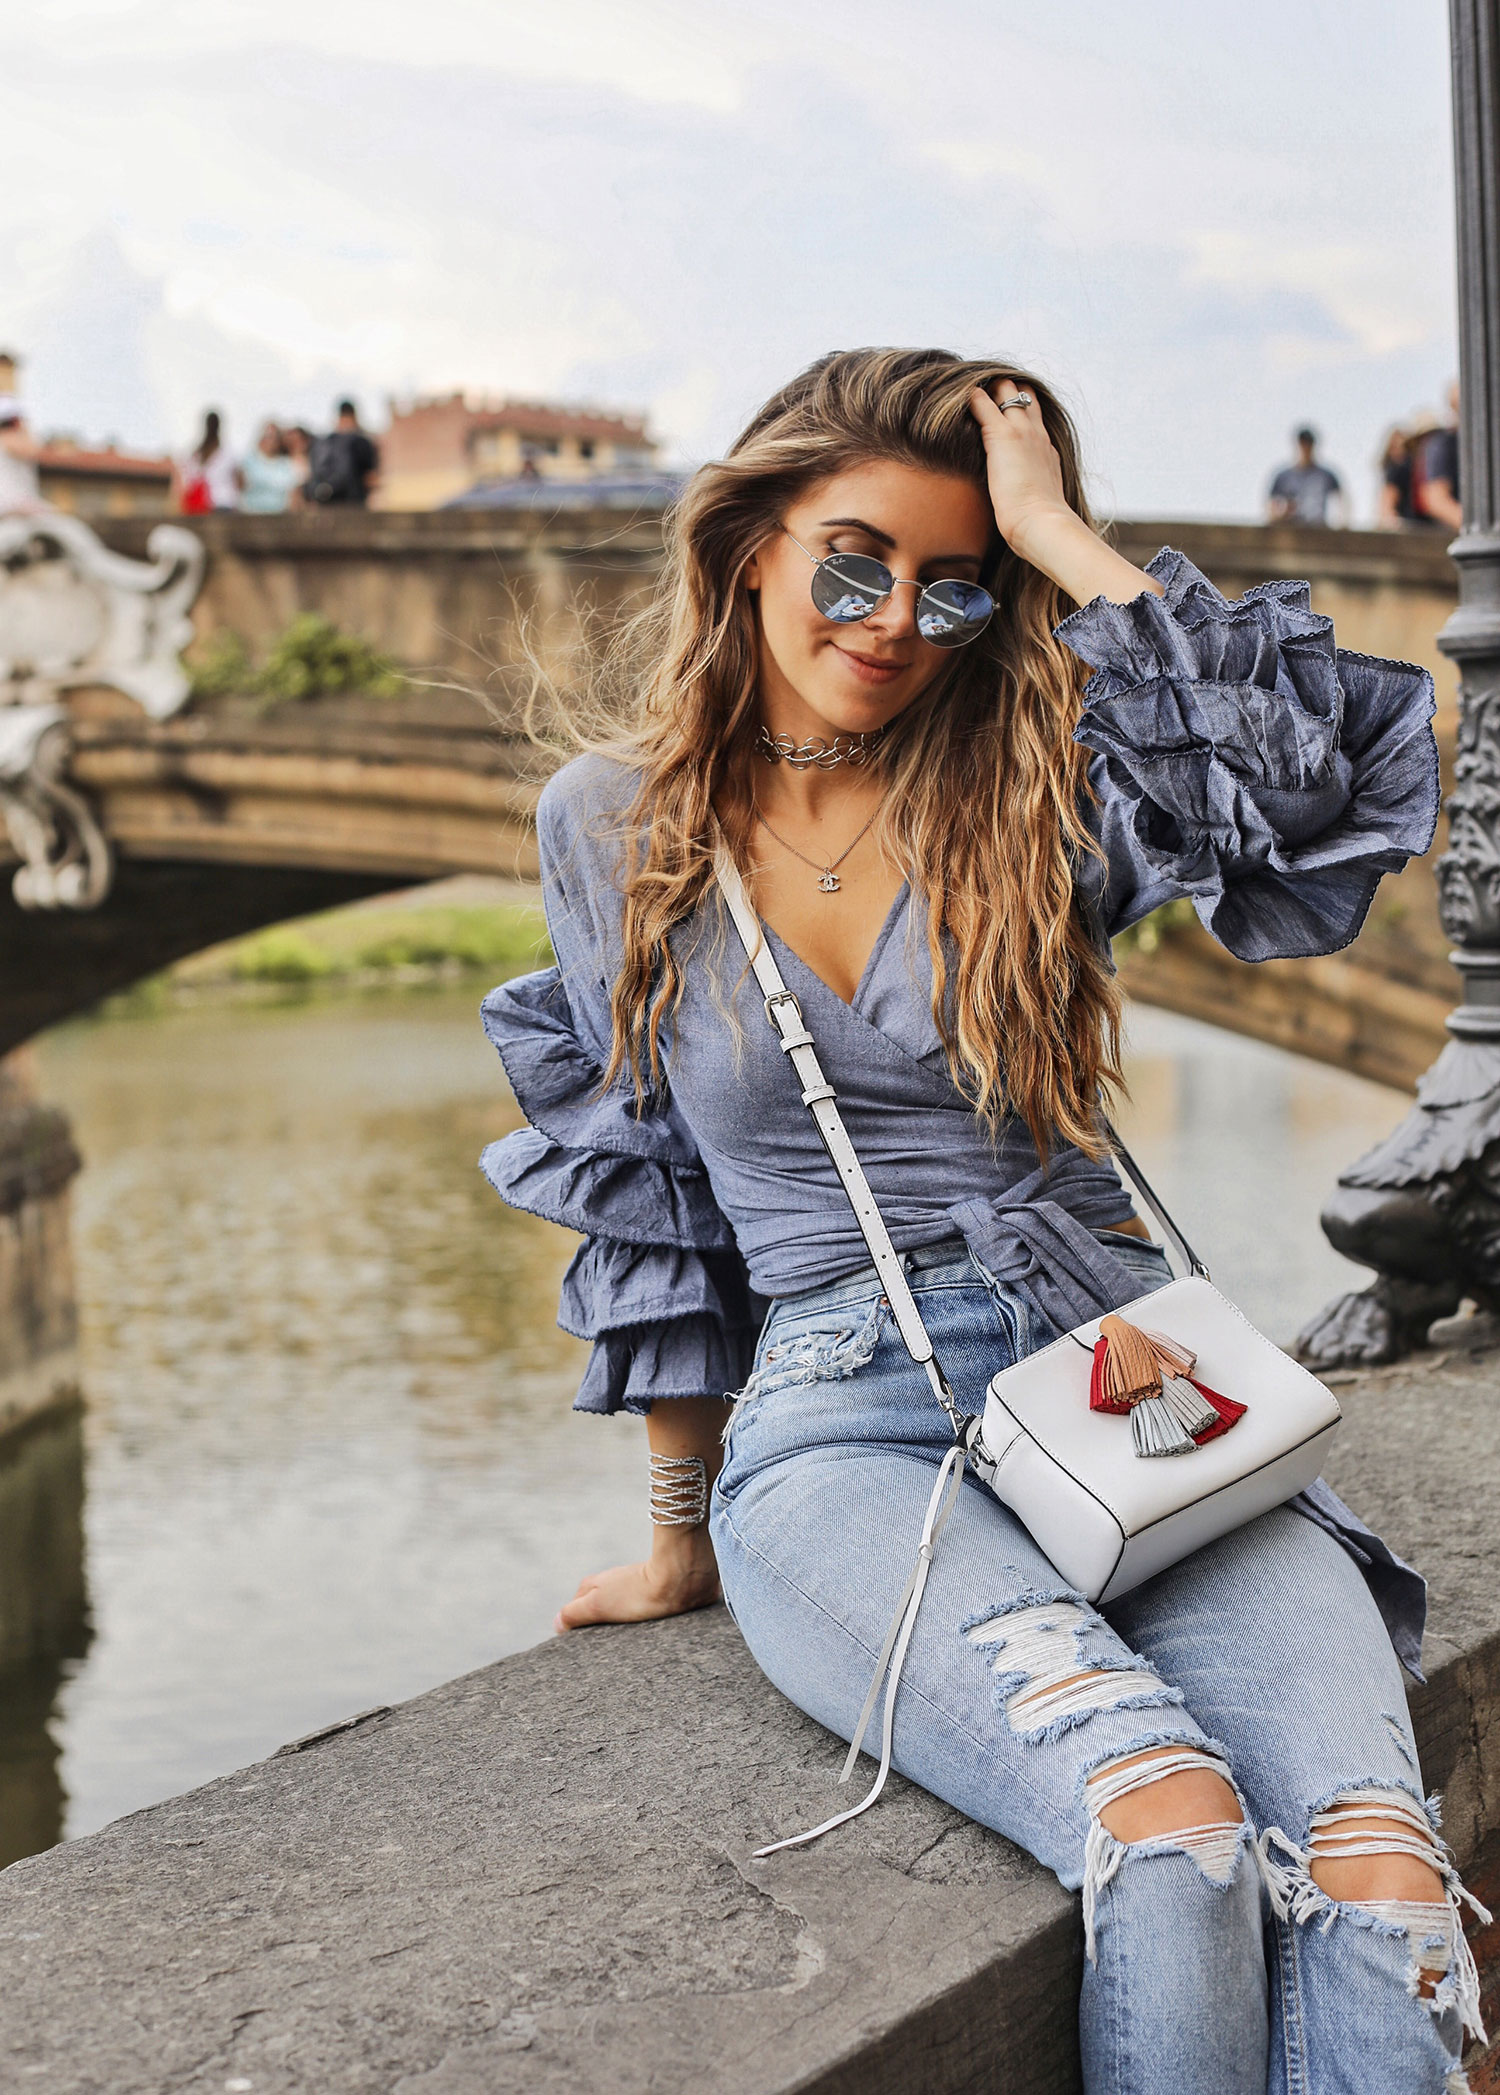 Fashion and lifestyle blogger Adelina Perrin of The Charming Olive wearing Tularosa wrap top, Grlfrnd denim jeans and Rebecca Minkoff bag